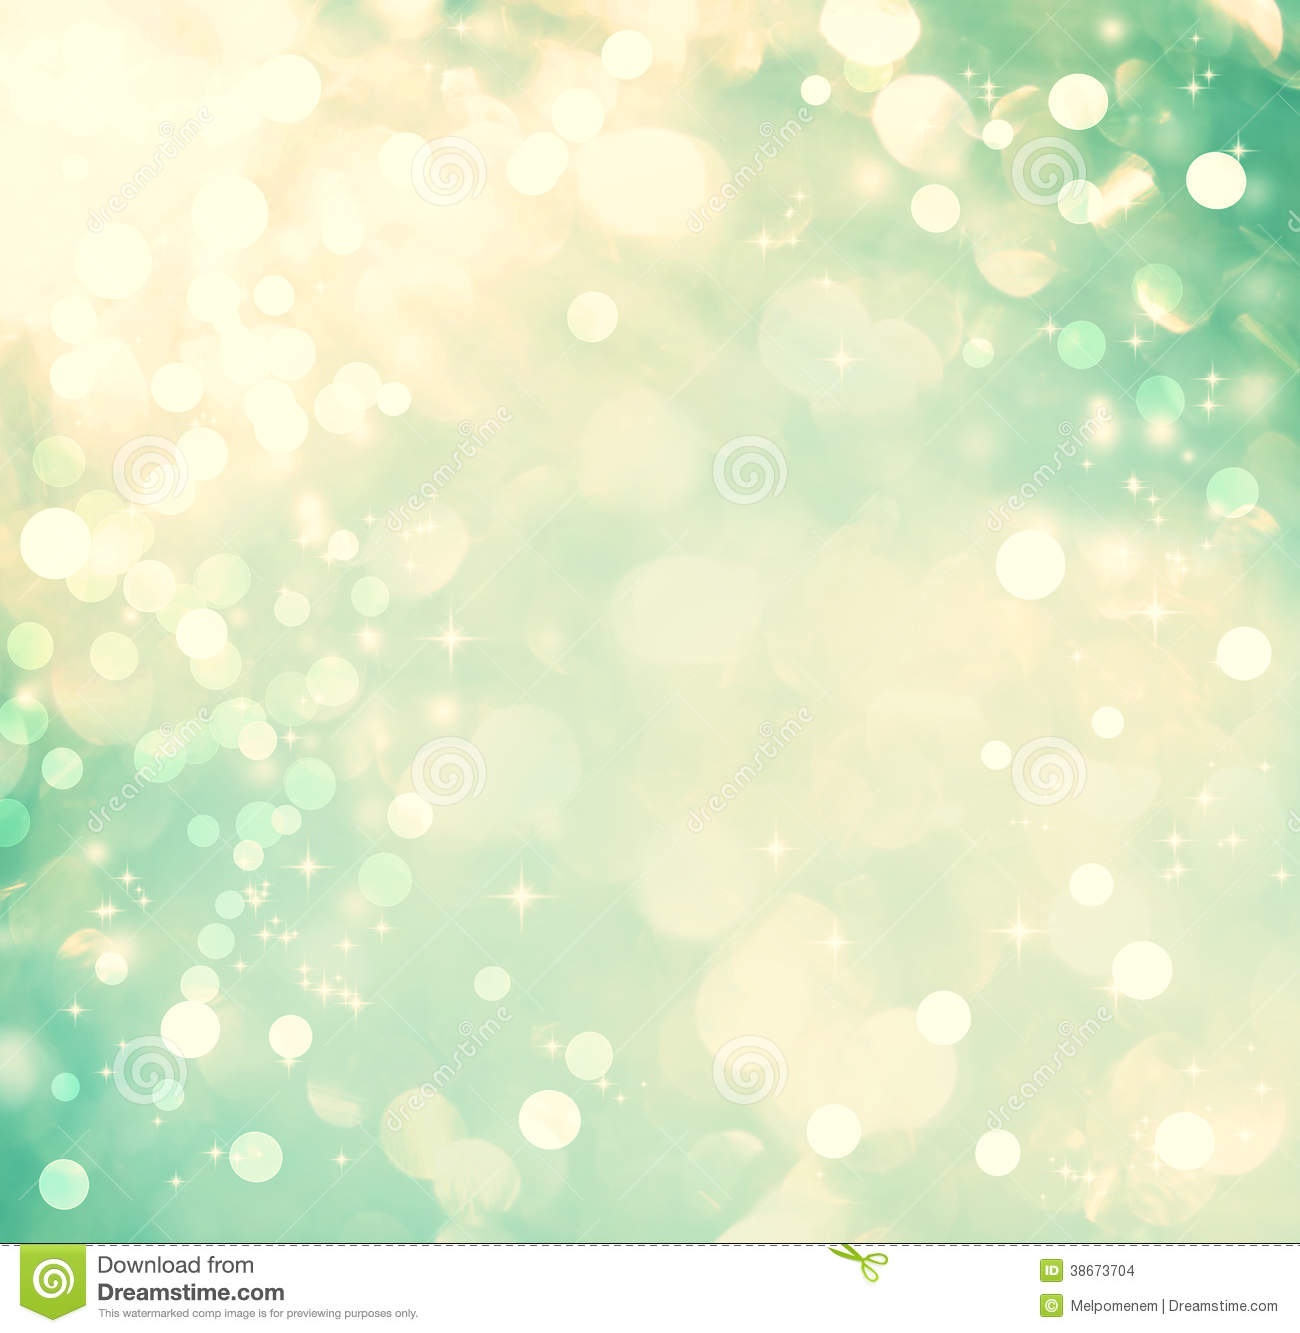 Light teal background - photo#25